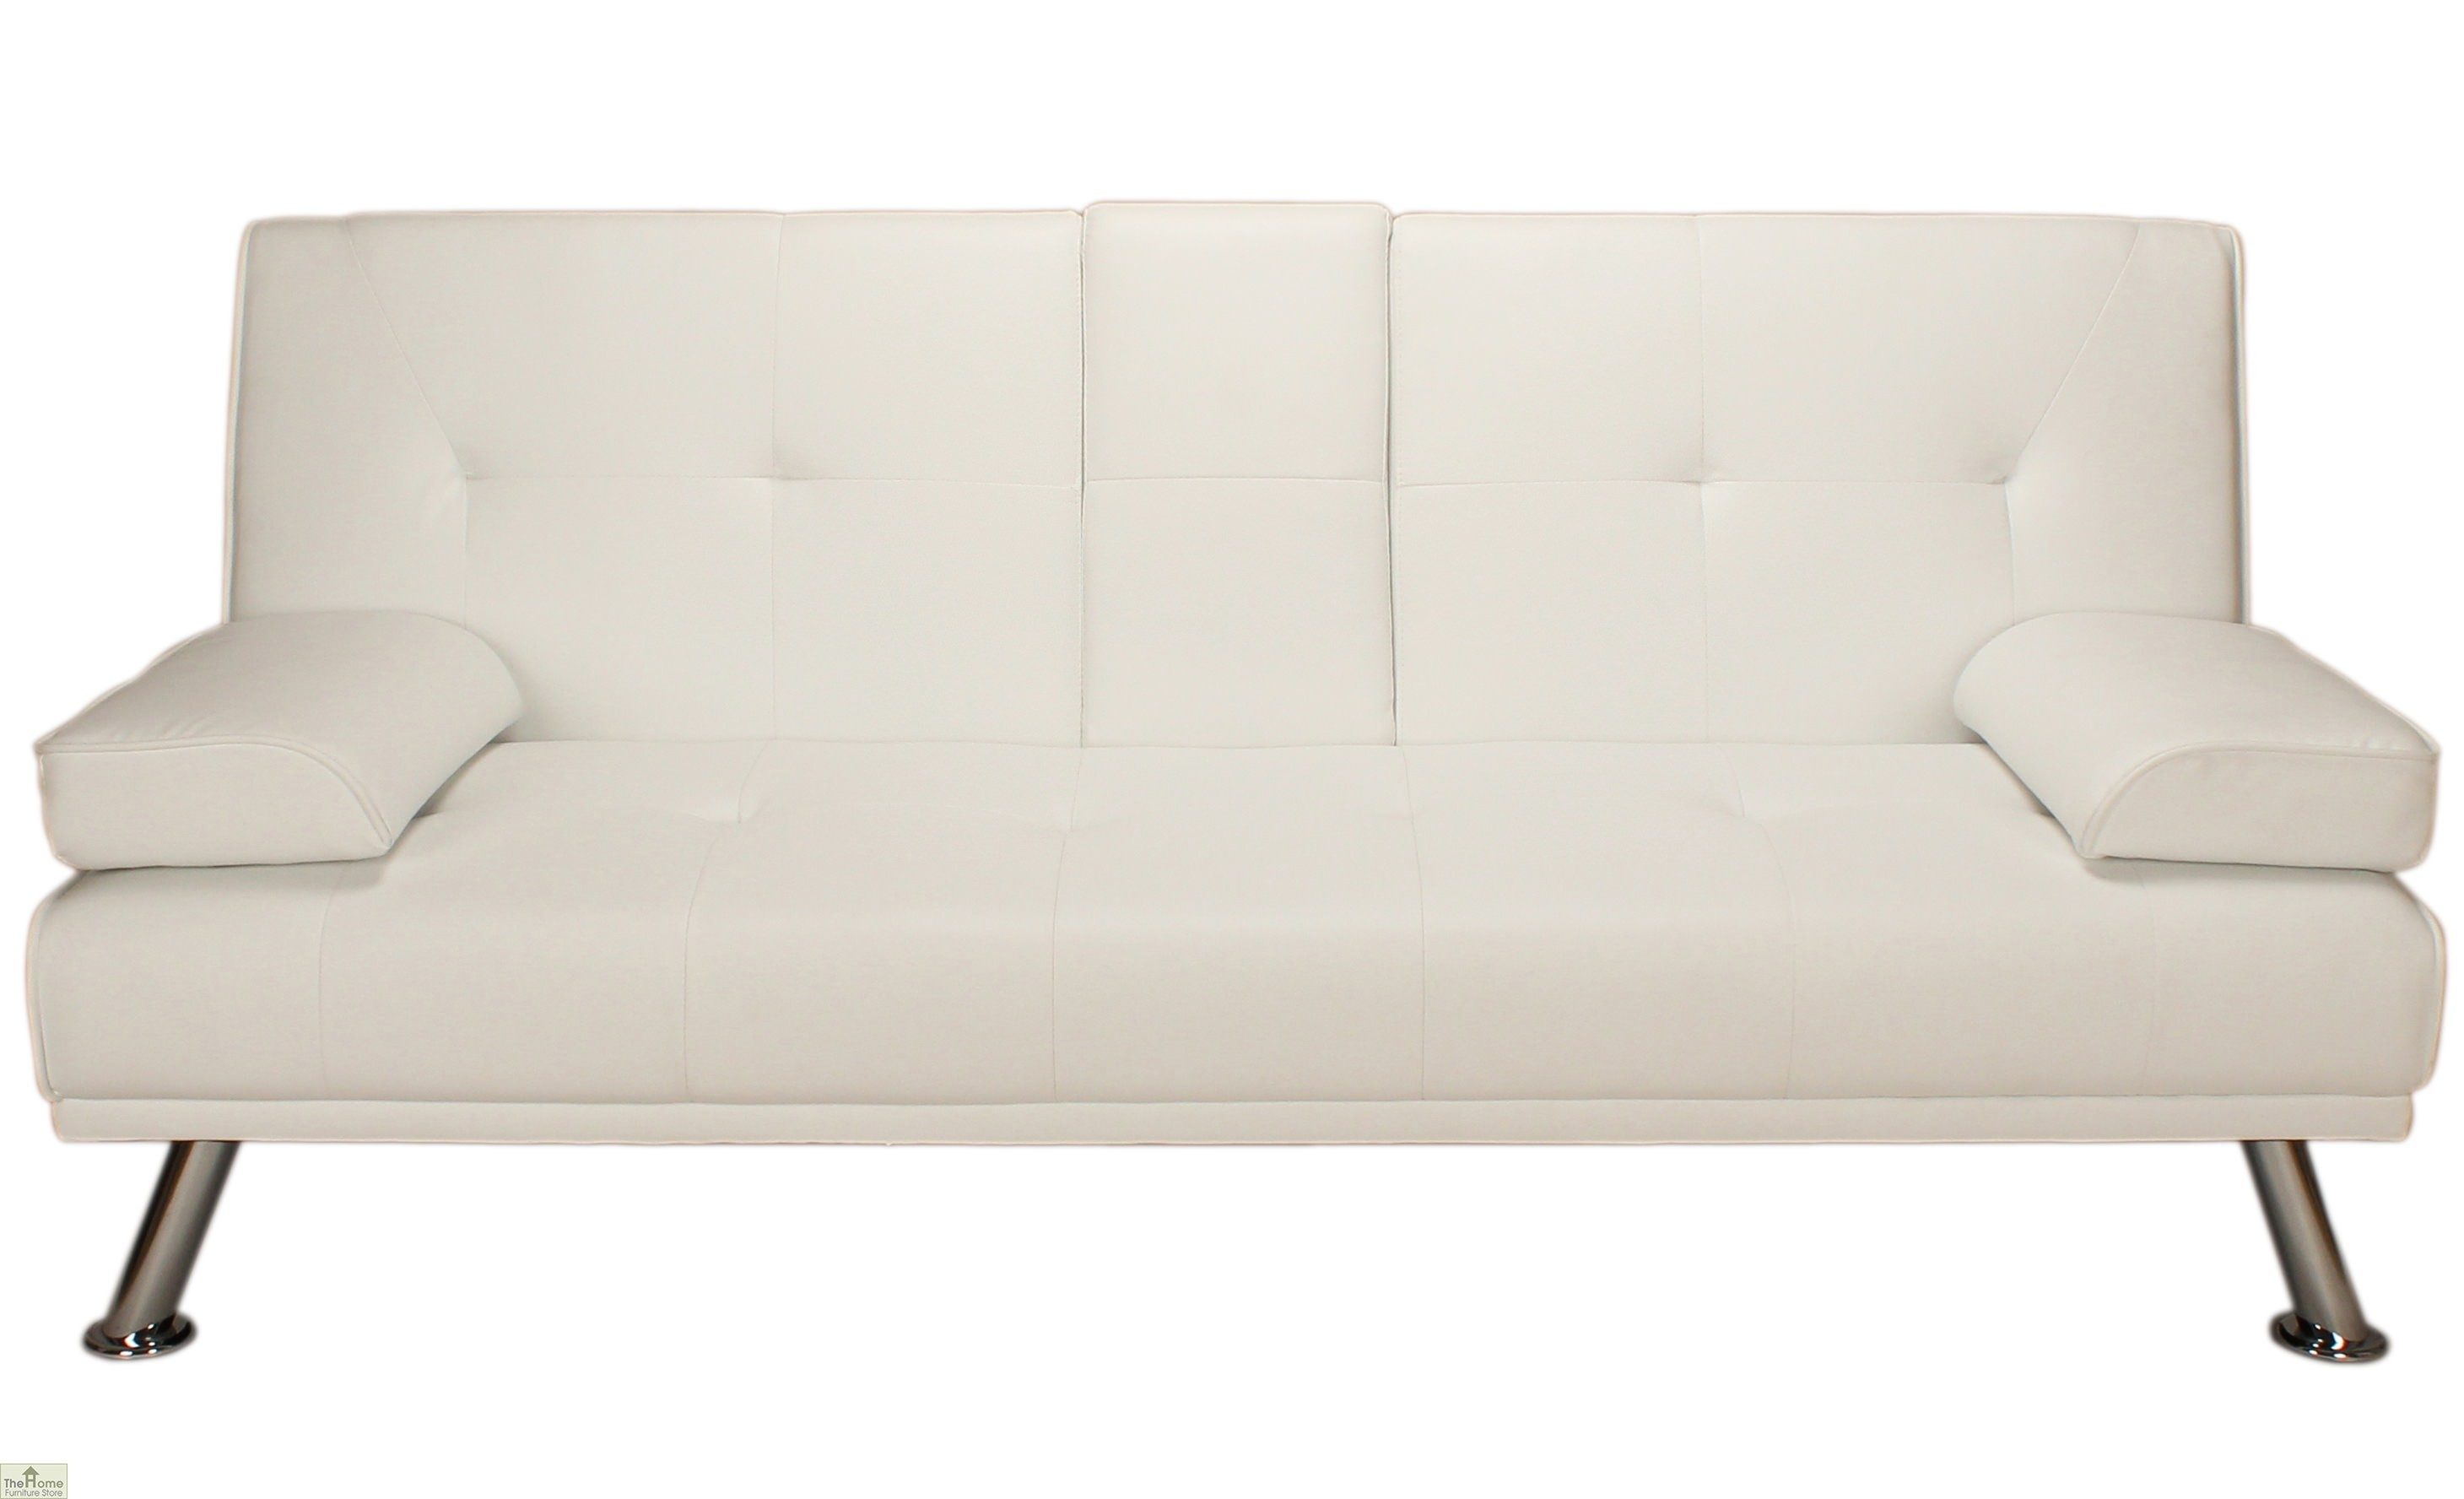 White leather sofa bed uk vogue white leather sofa bed for White sofa bed uk